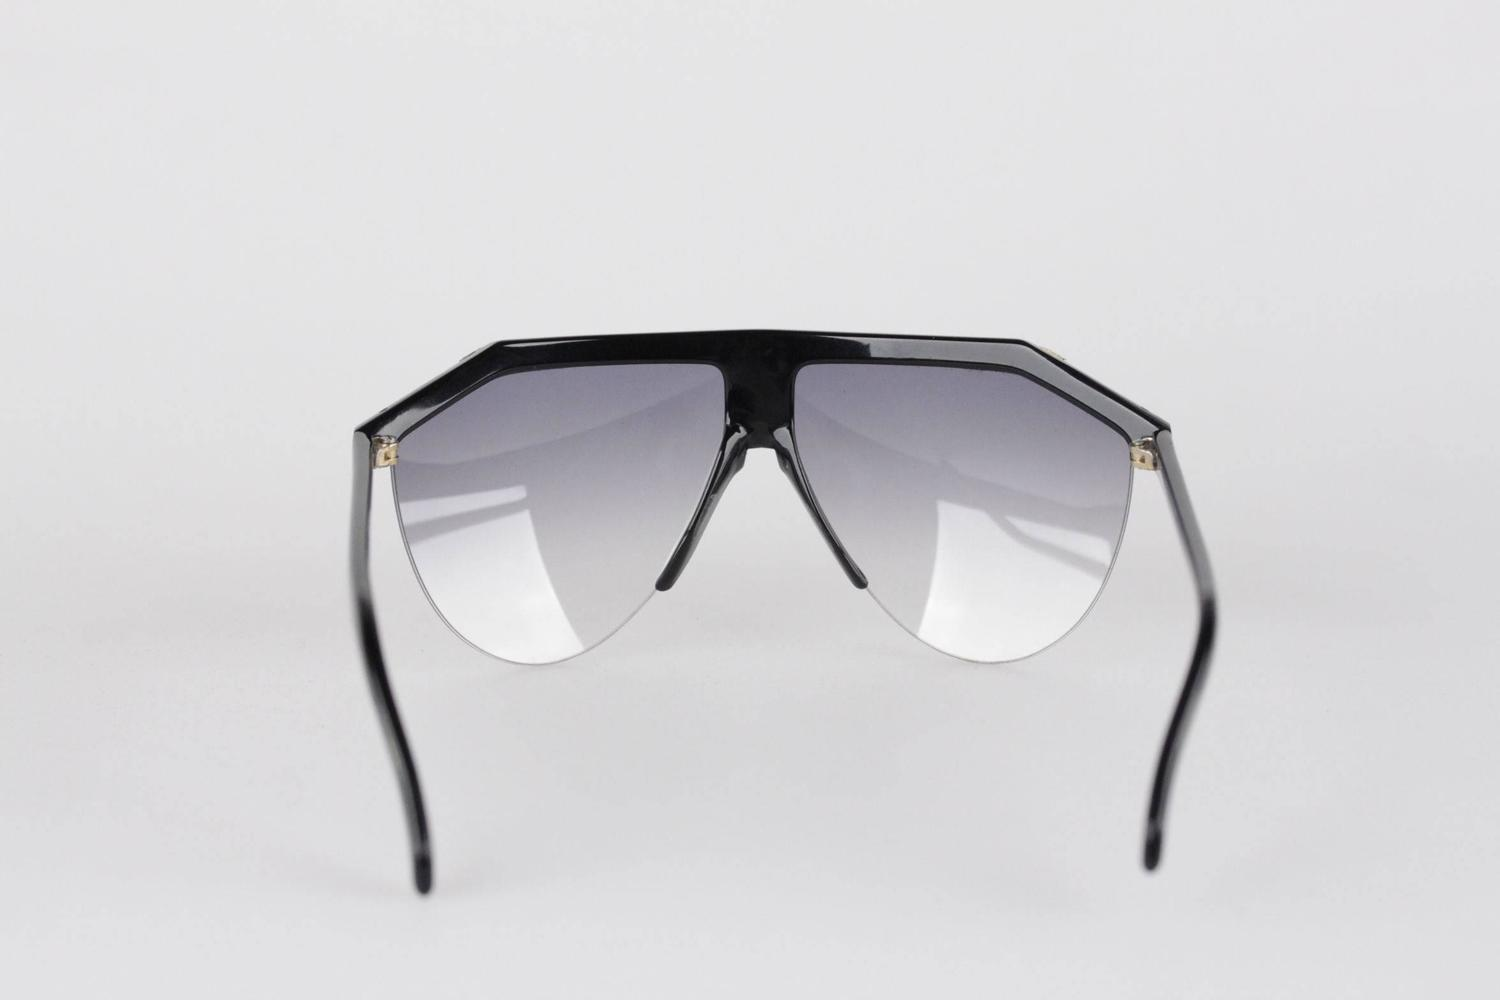 dcb3ffa6d38 Vintage Versace Sunglasses For Sale